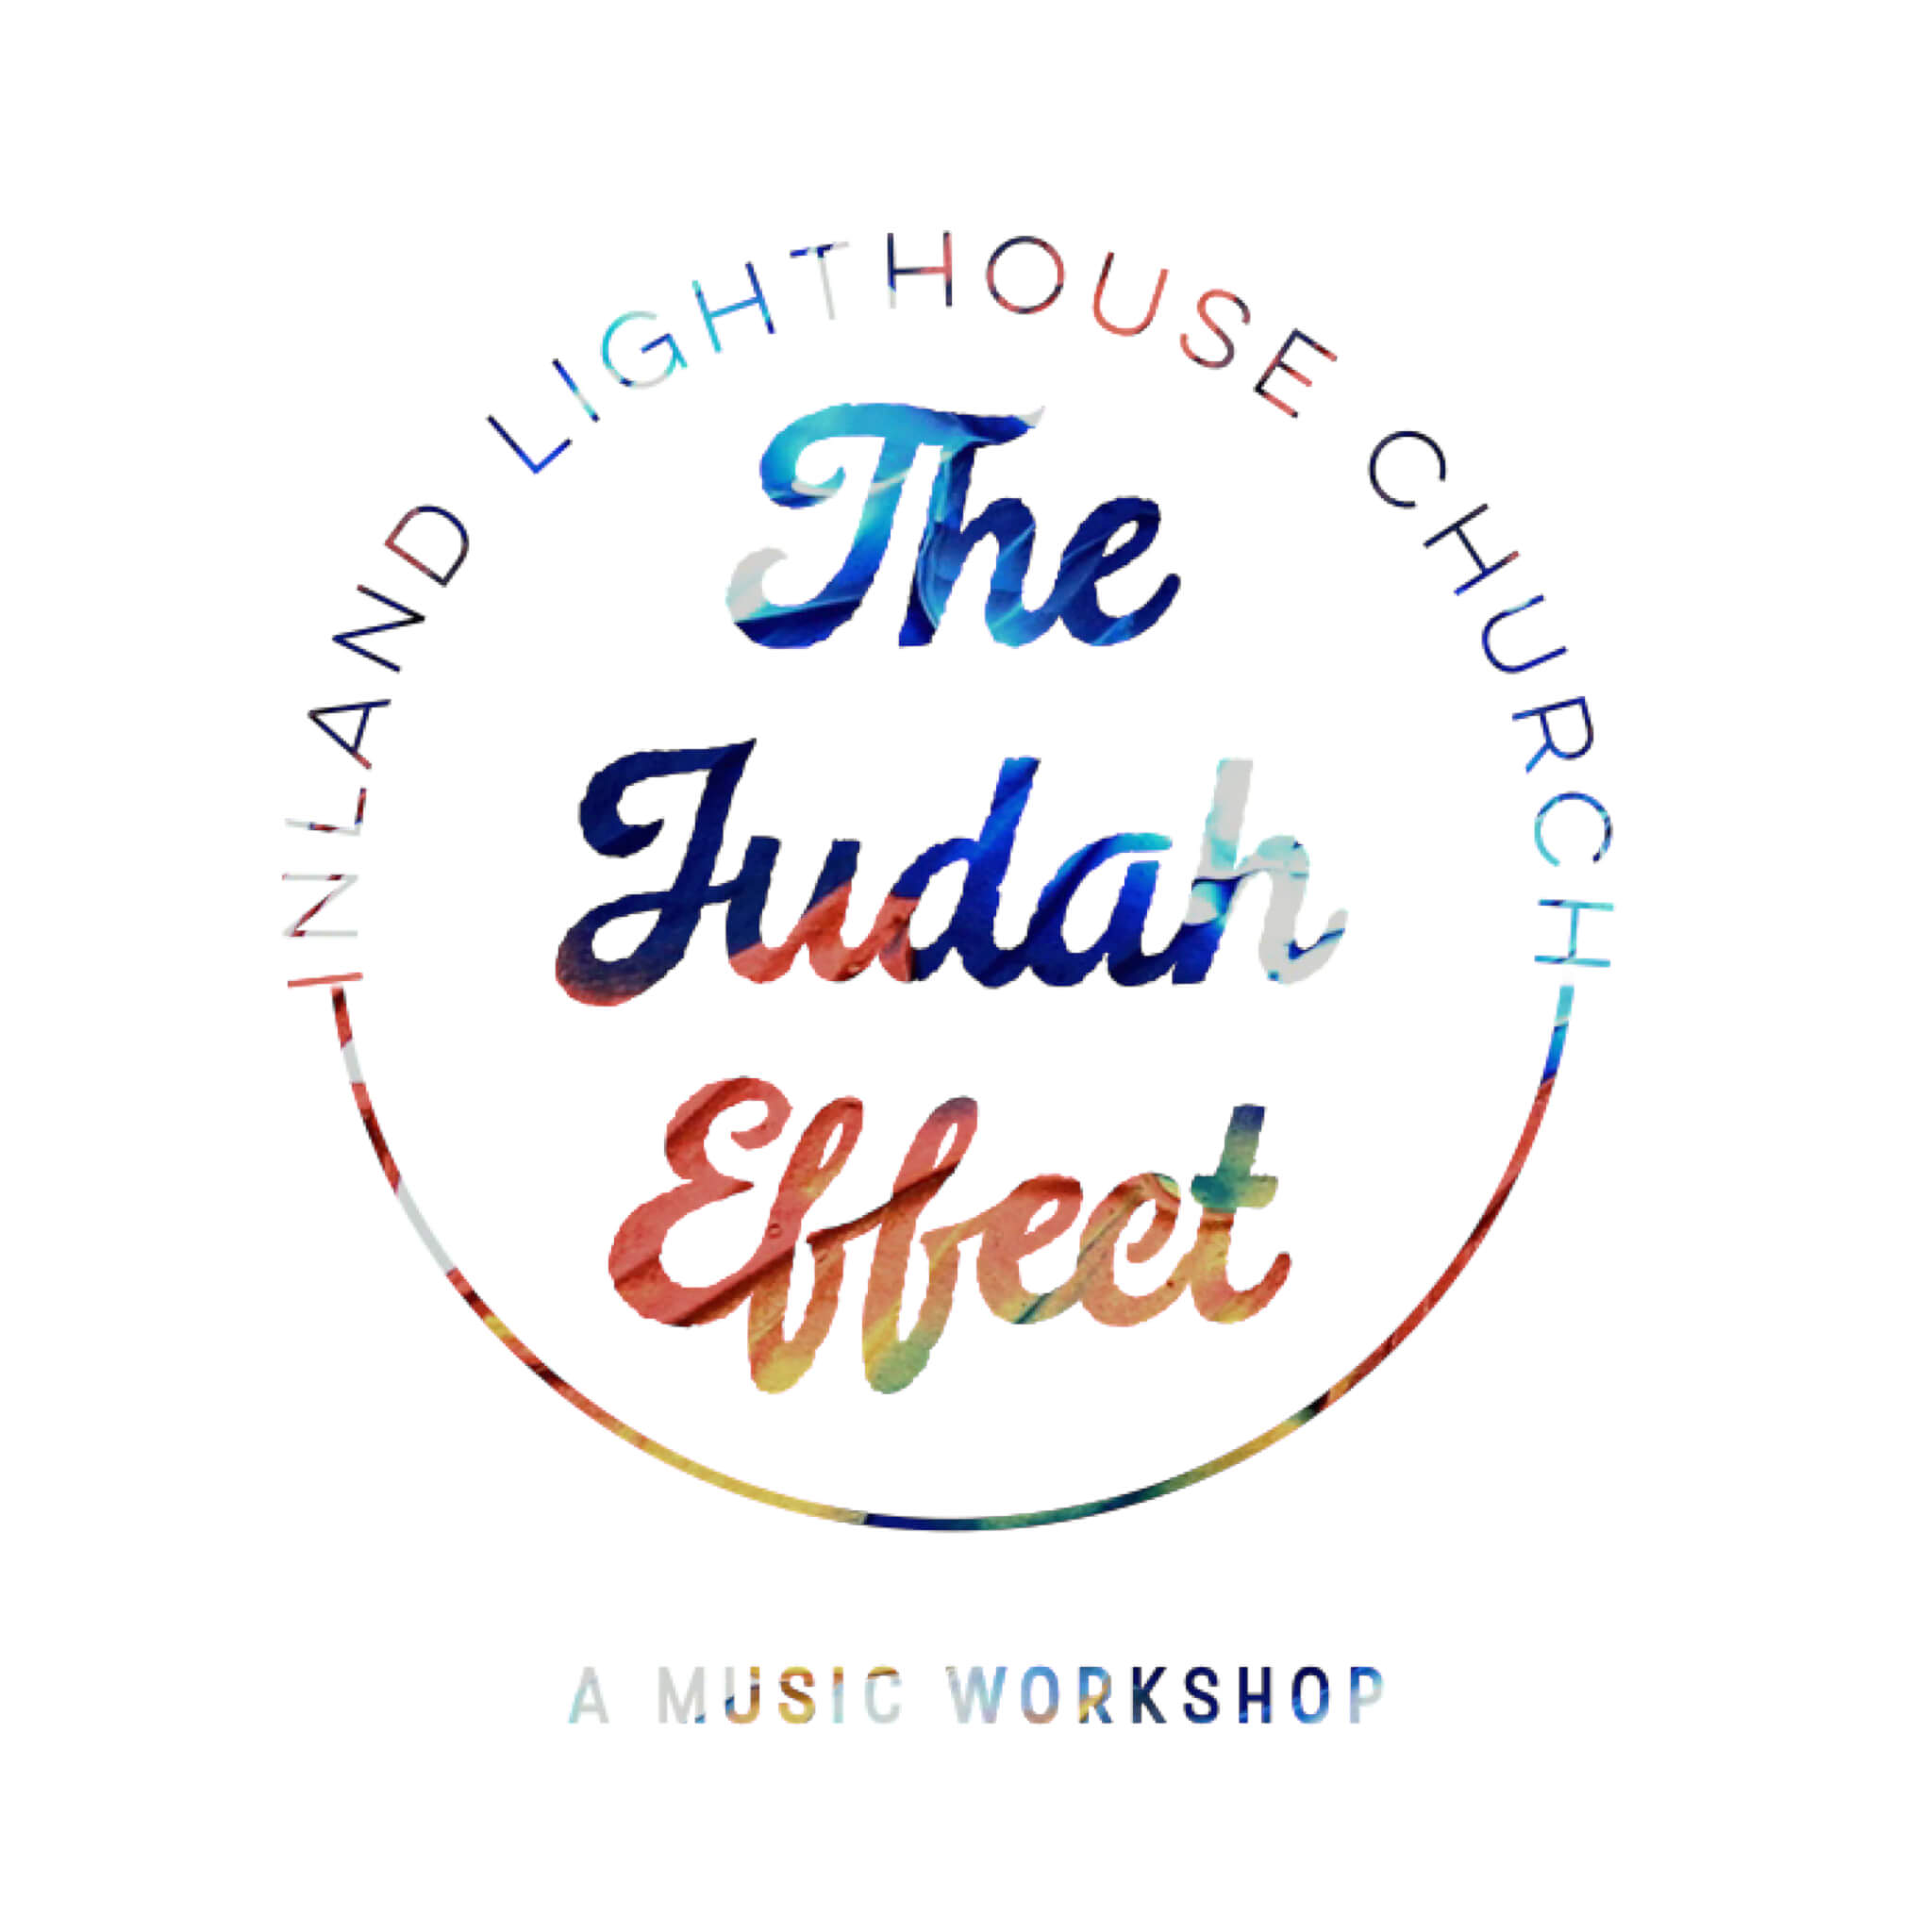 Judah Effect Music Workshop | October 26-27, 2018